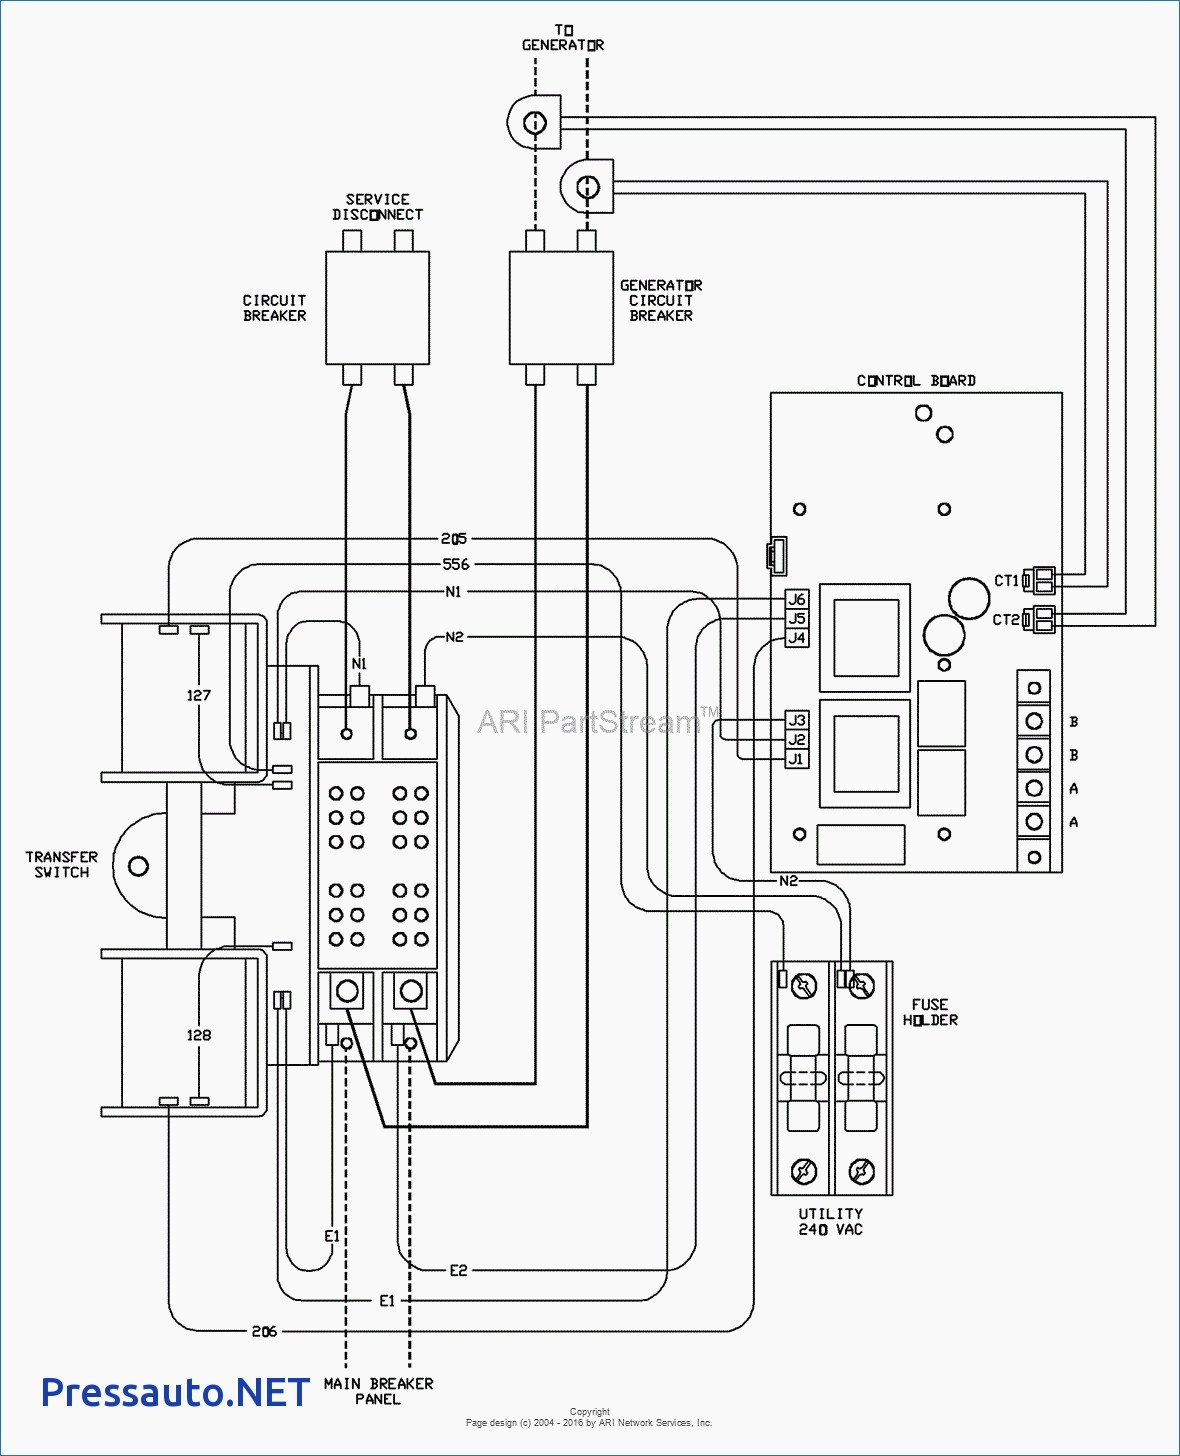 portable generator transfer switch wiring diagram Download-Whole House Transfer Switch Wiring Diagram Beautiful Generator Manual Transfer Switch Wiring Diagram 16-d